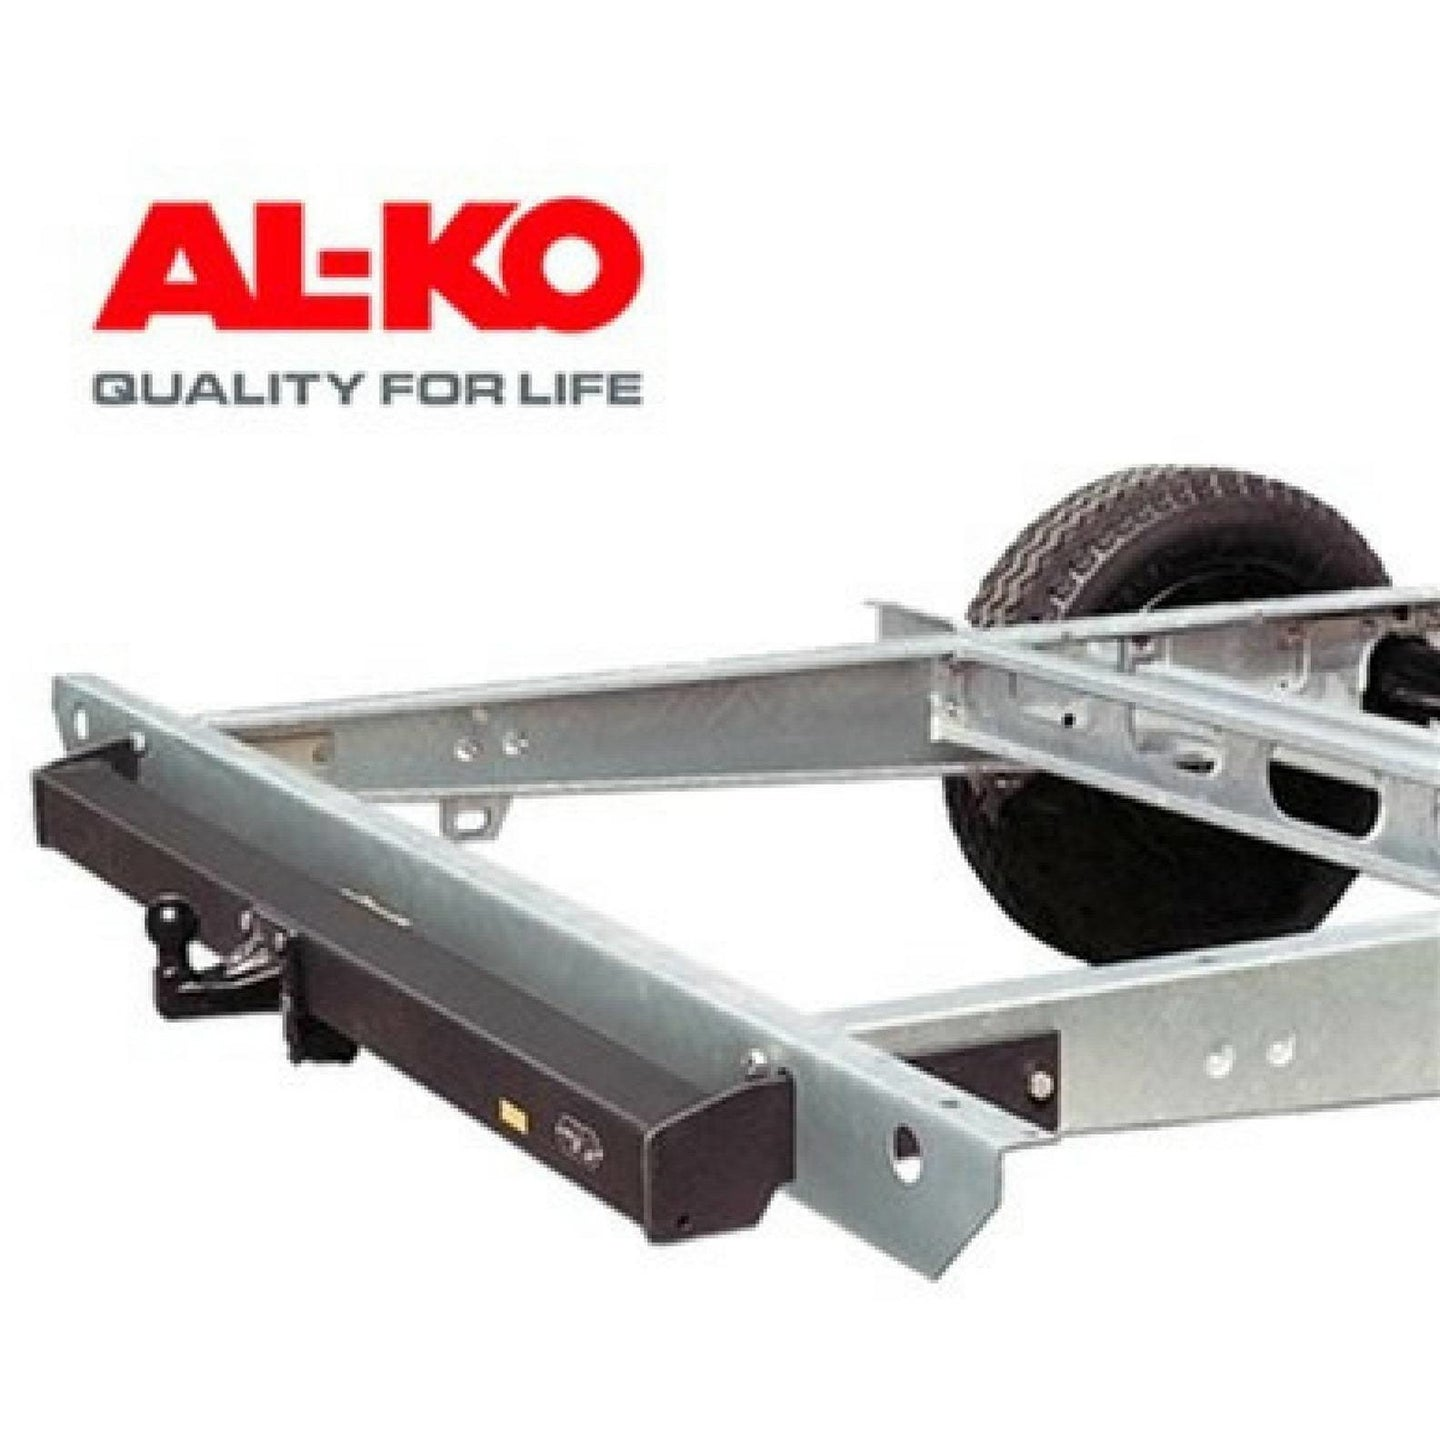 ALKO Towbar Assembly (1620380) - Quality Caravan Awnings